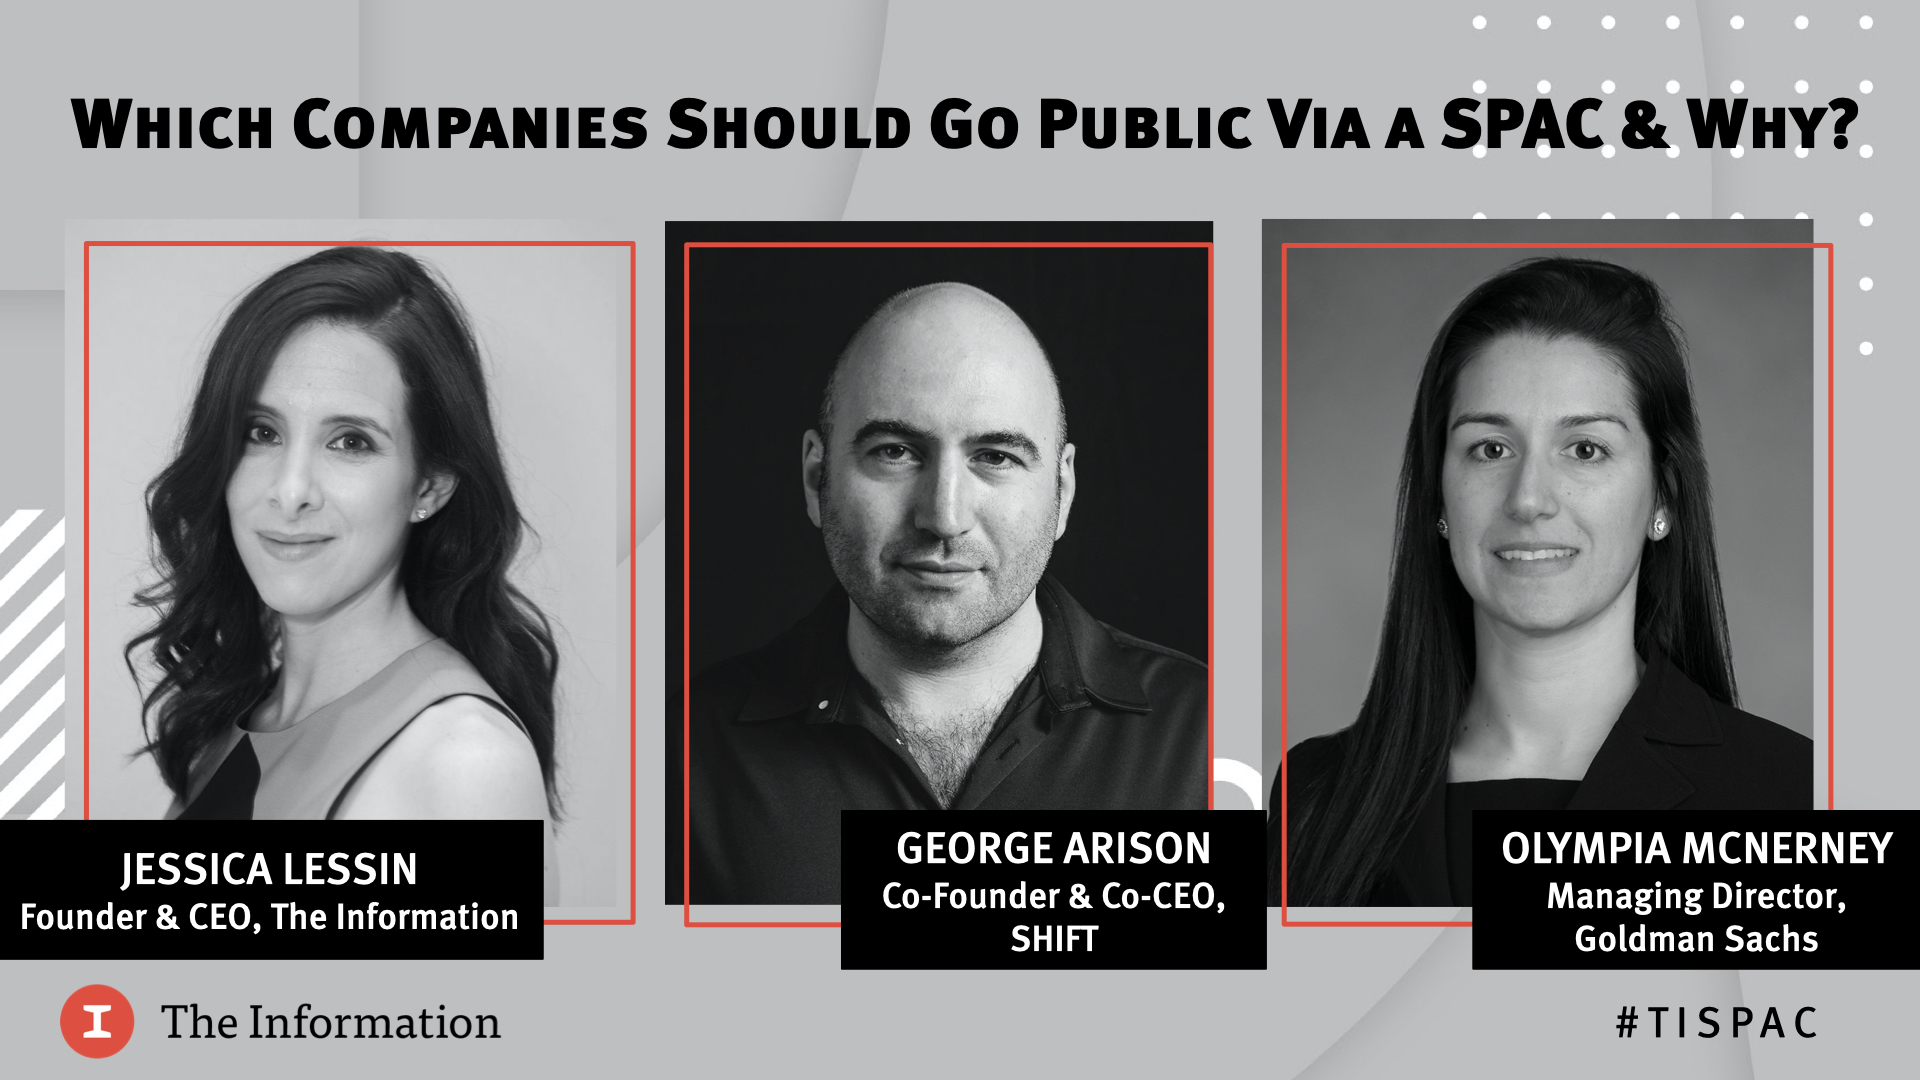 SPAC 2020 - Which Companies Should Go Public via a SPAC and Why?